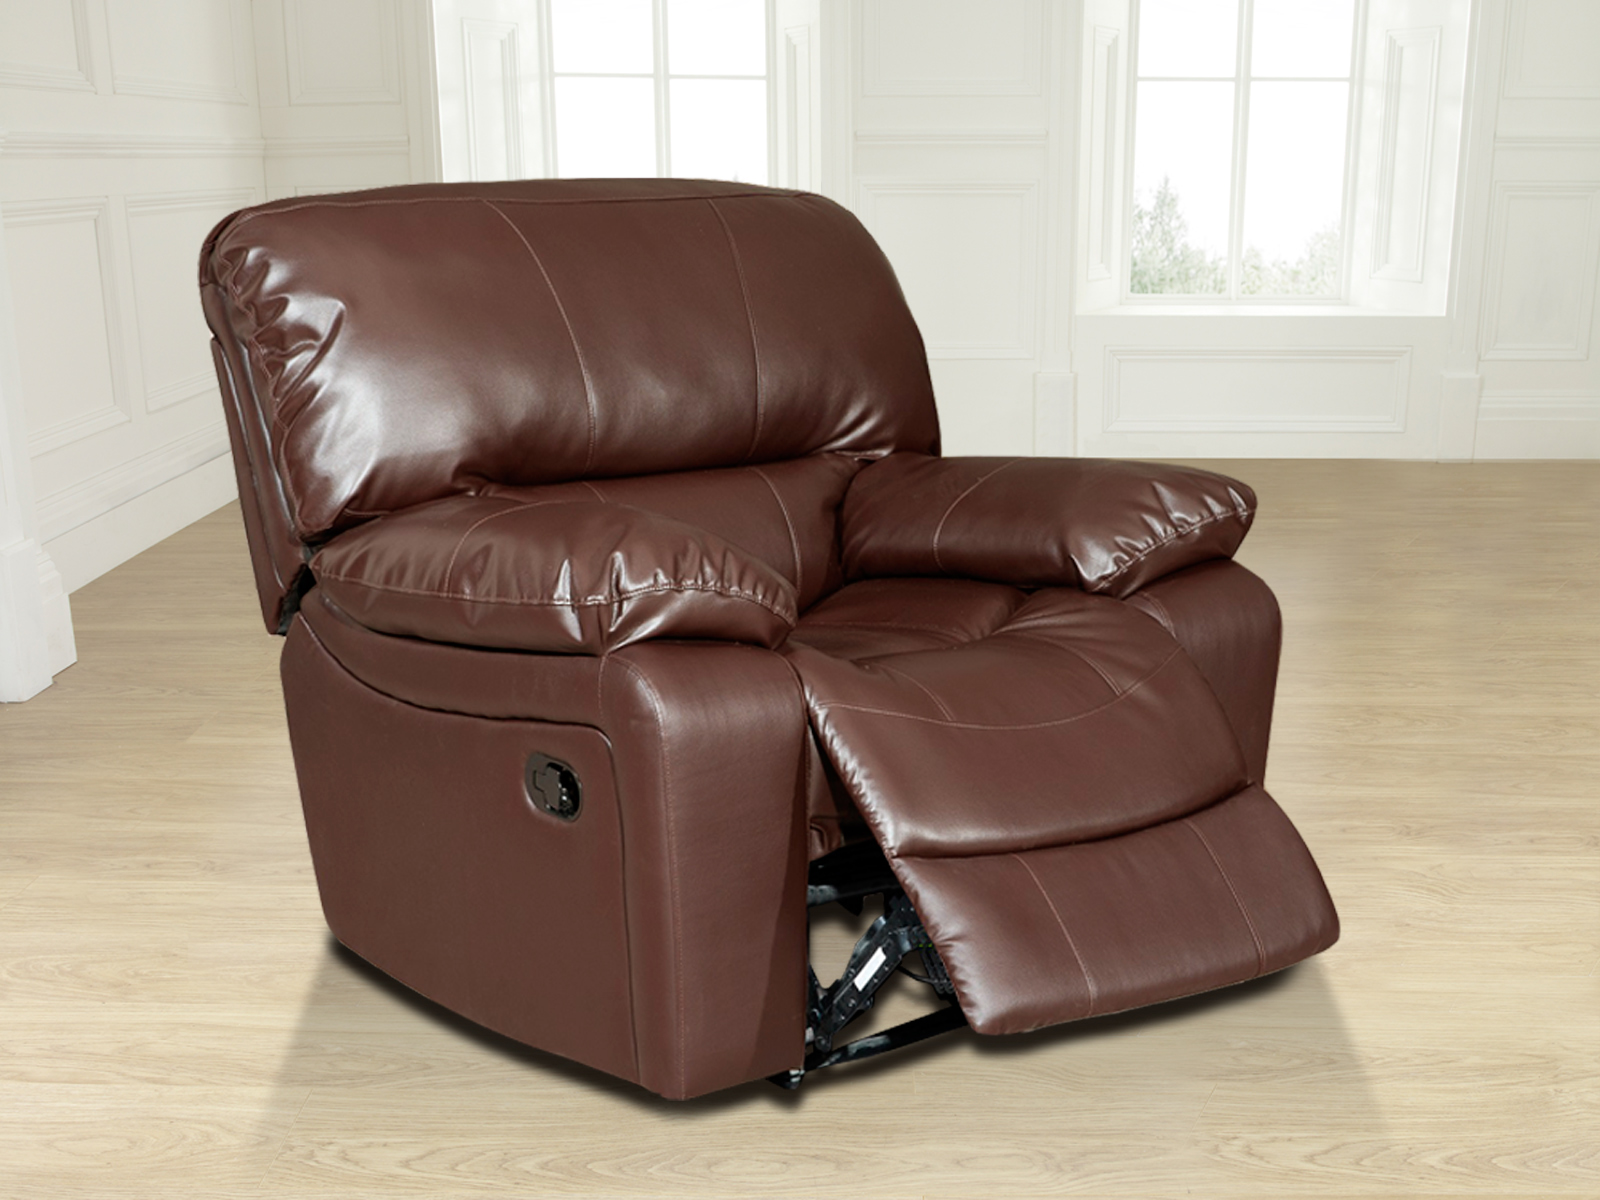 New valencia jumbo 1 seater bonded leather recliner chair - Sofas a medida valencia ...